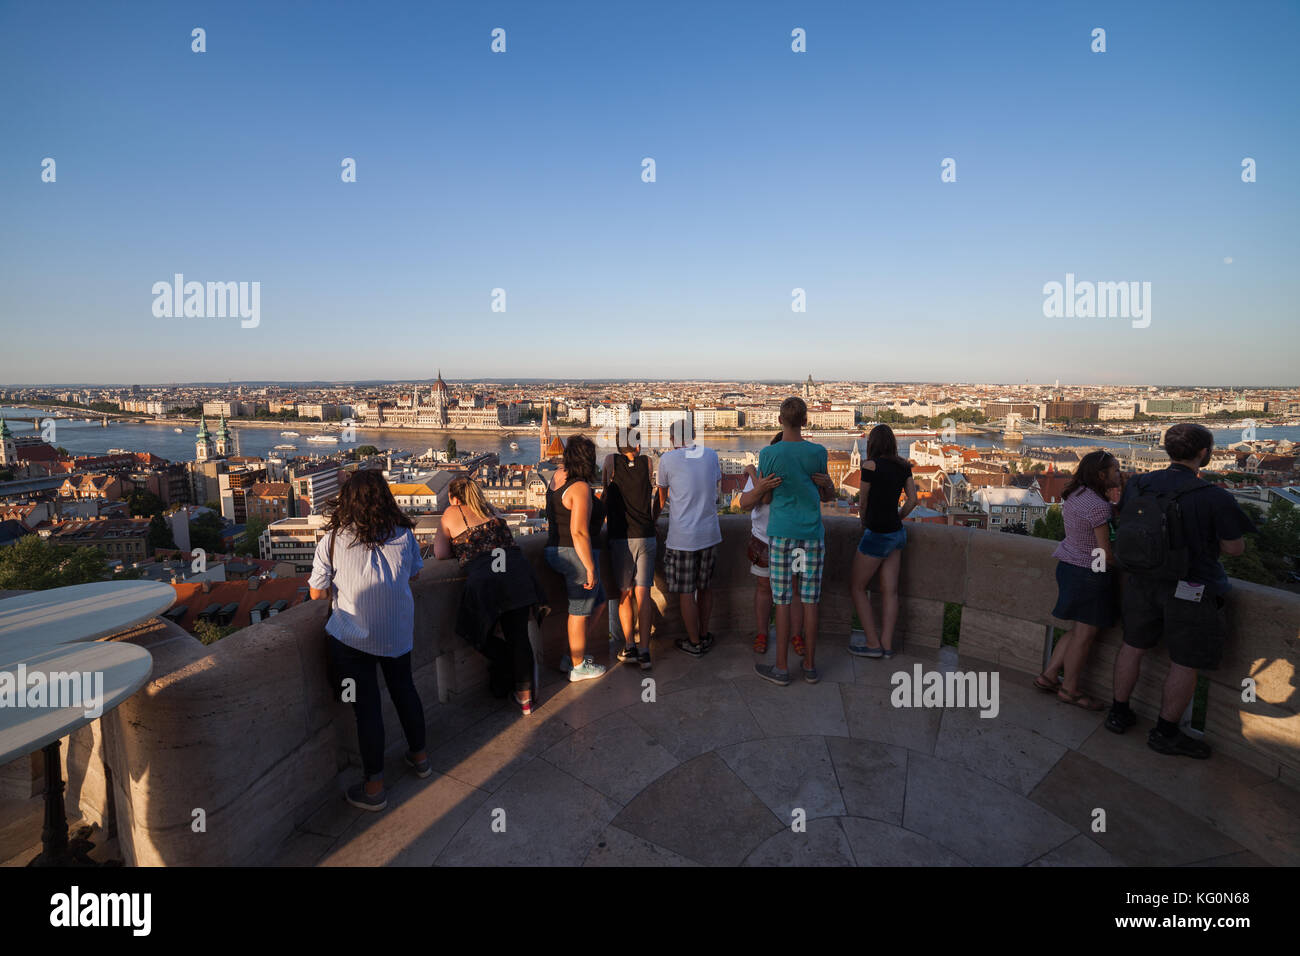 Group of tourists on Fisherman's Bastion viewpoint terrace overlooking city of Budapest in Hungary, Europe, - Stock Image